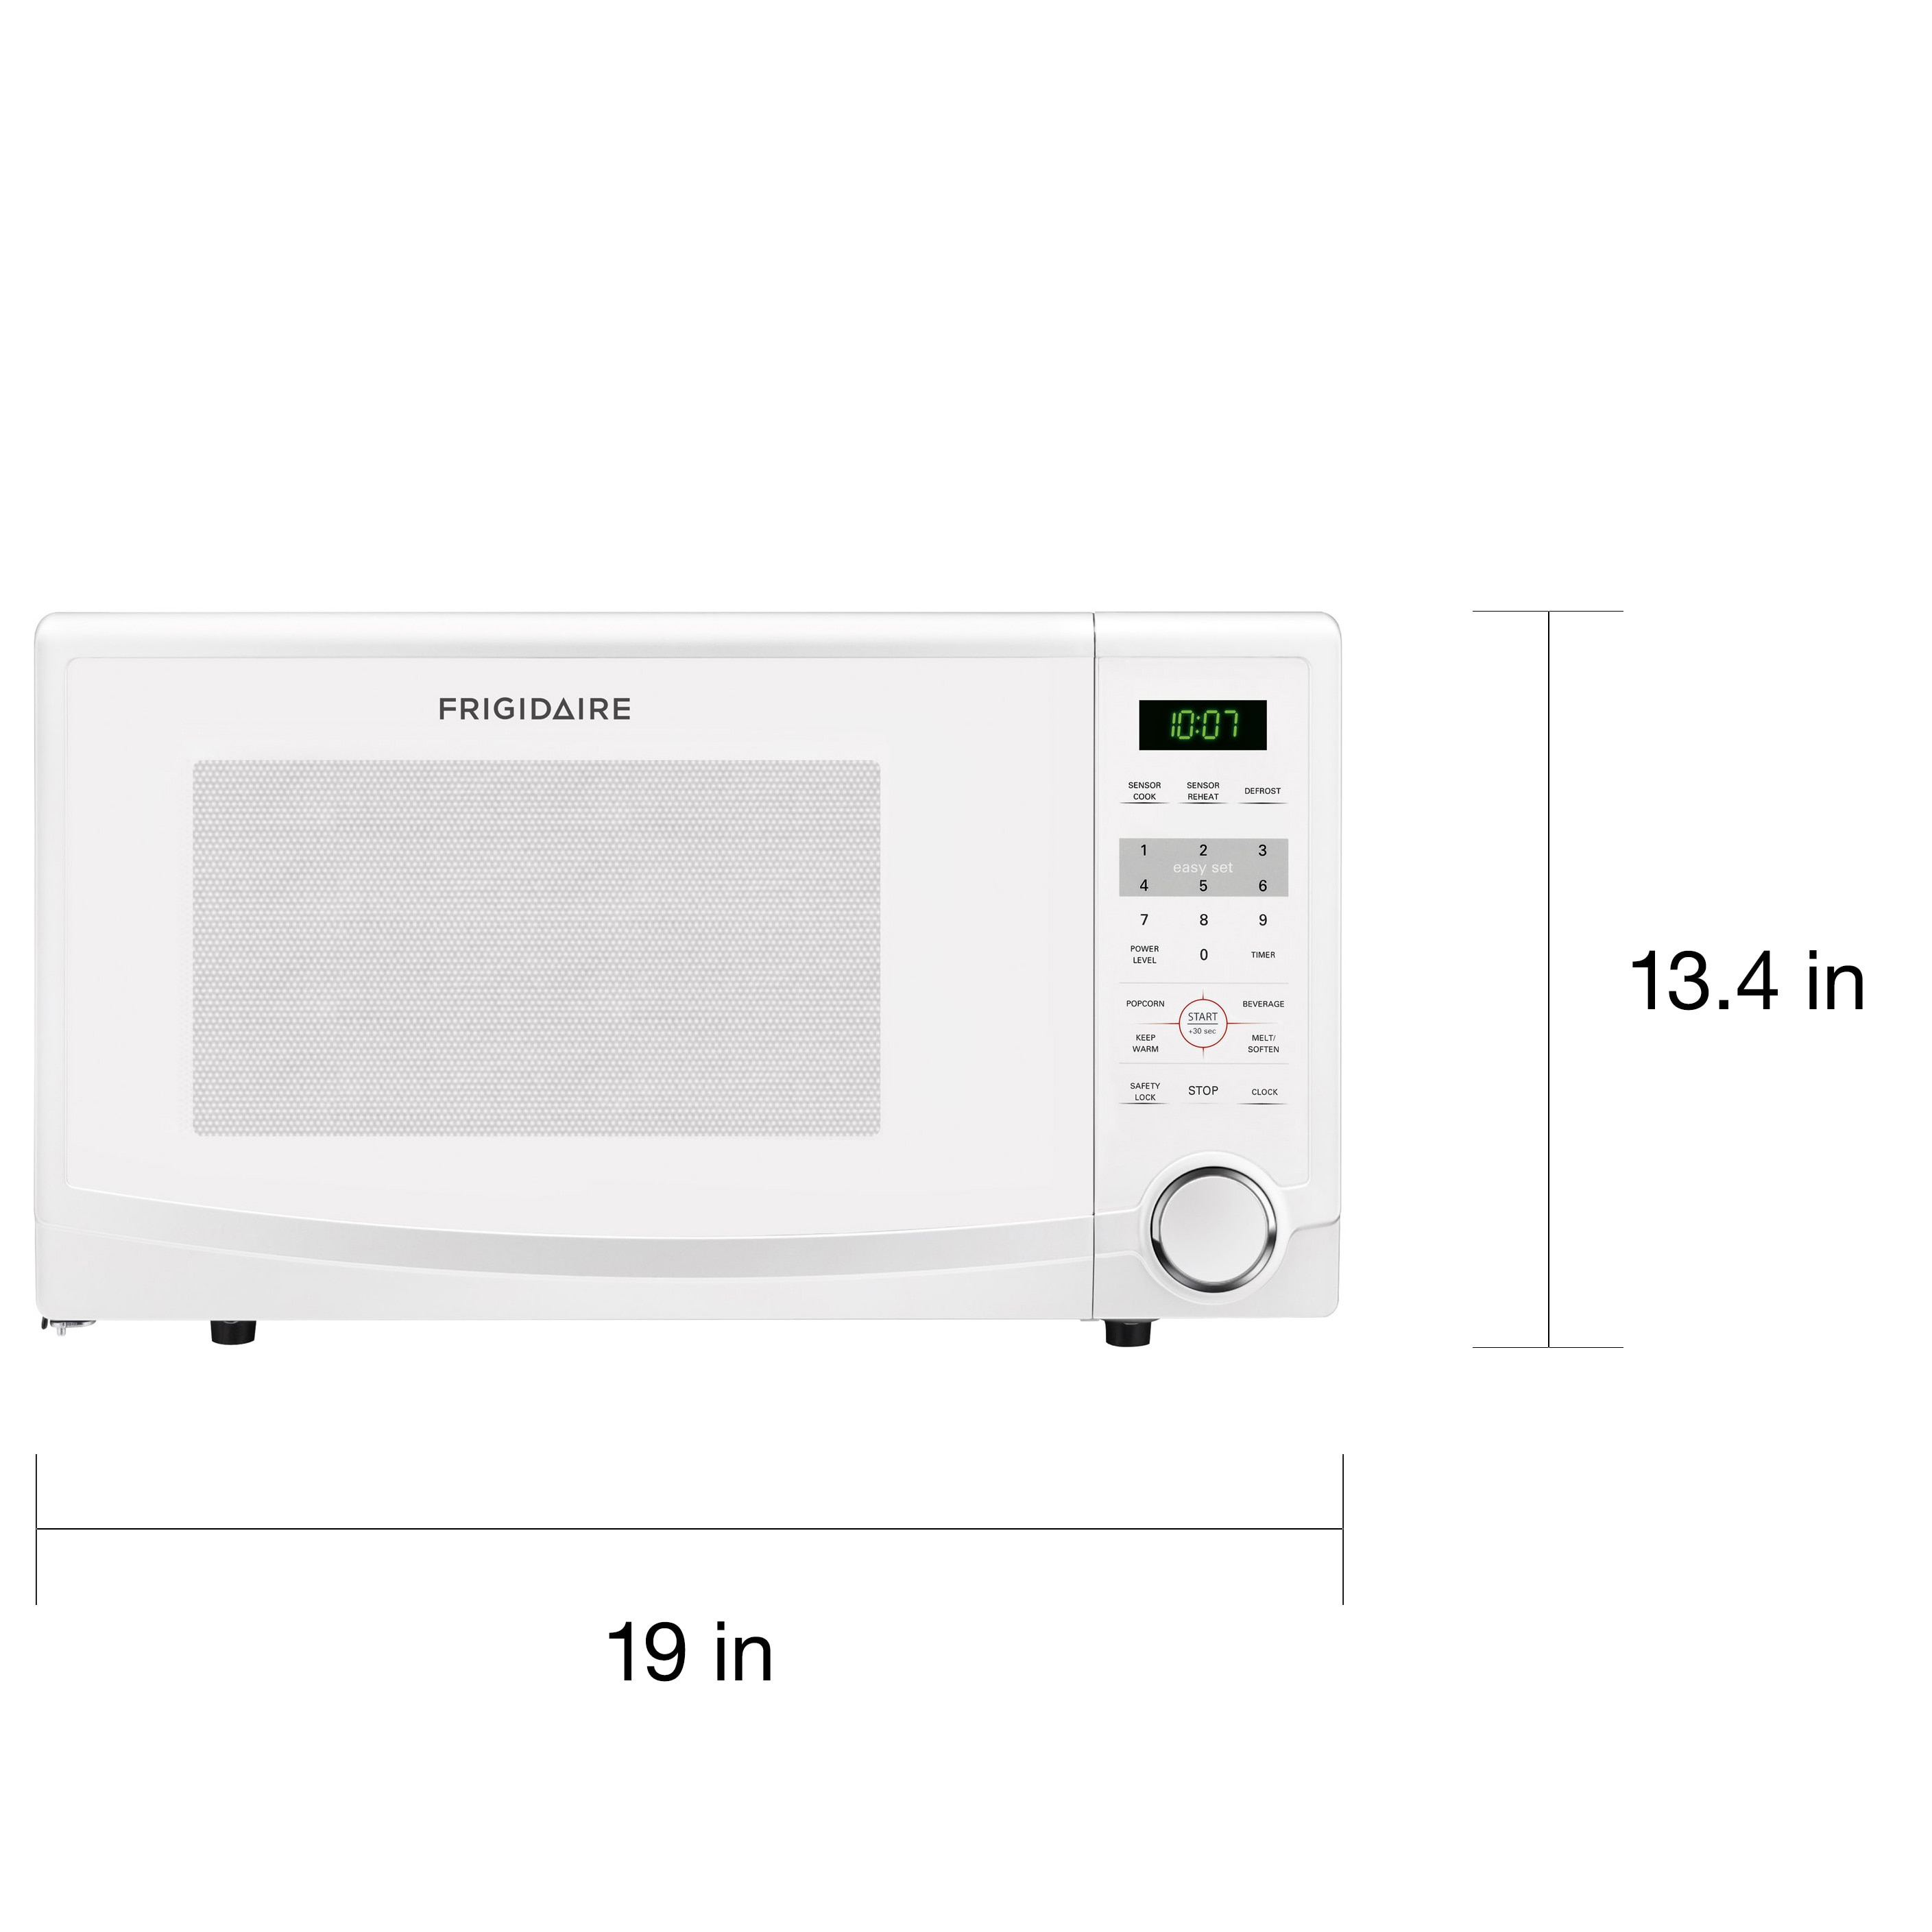 Frigidaire White Ffcm1134lw 1 Cubic Foot Countertop Microwave Oven